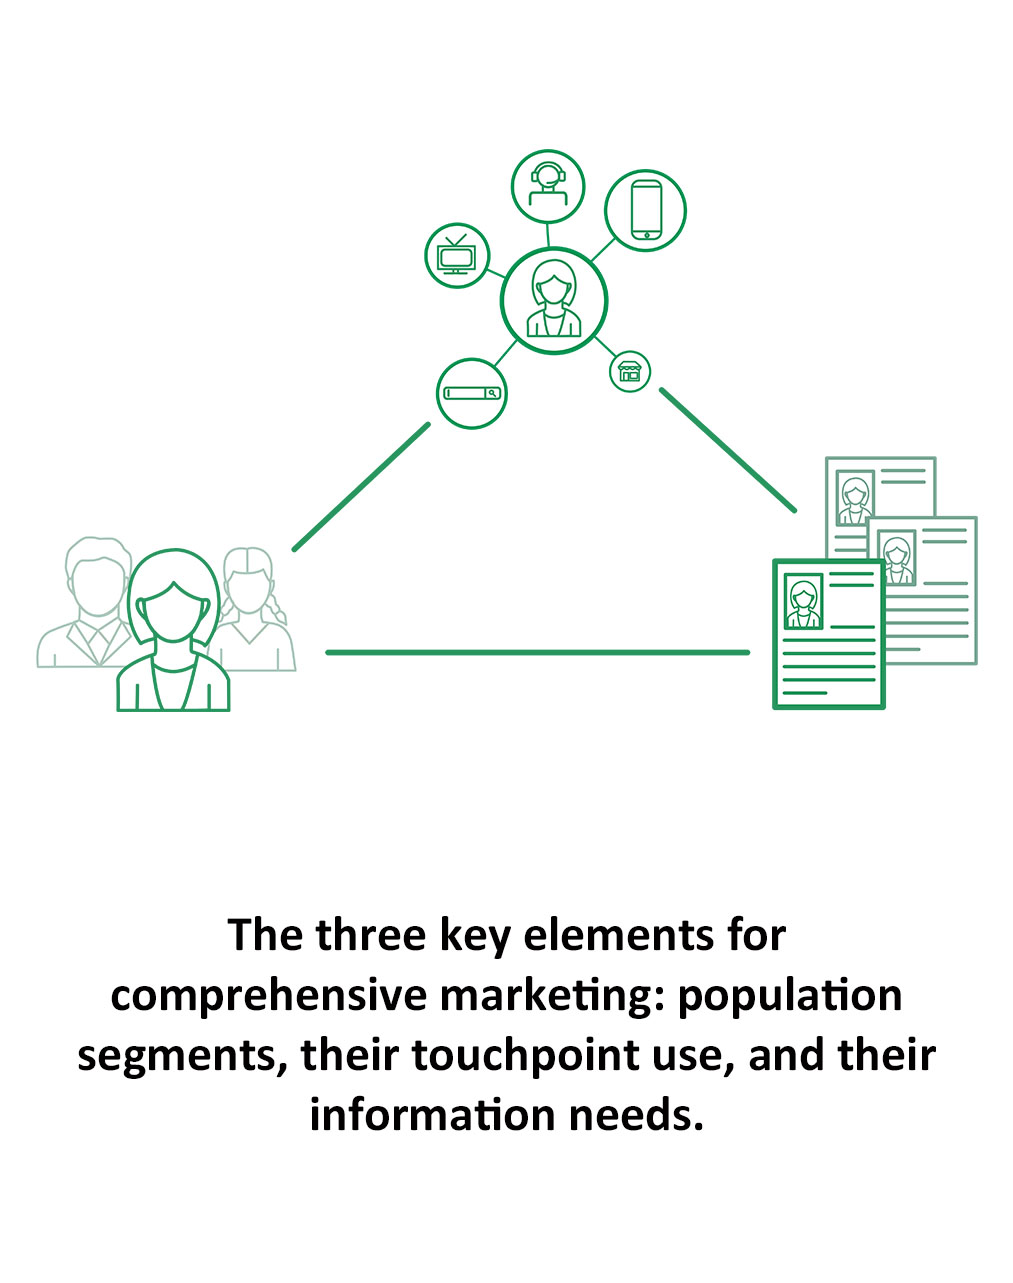 The three key elements for comprehensive marketing: population segments, their touchpoint use, and their information needs.